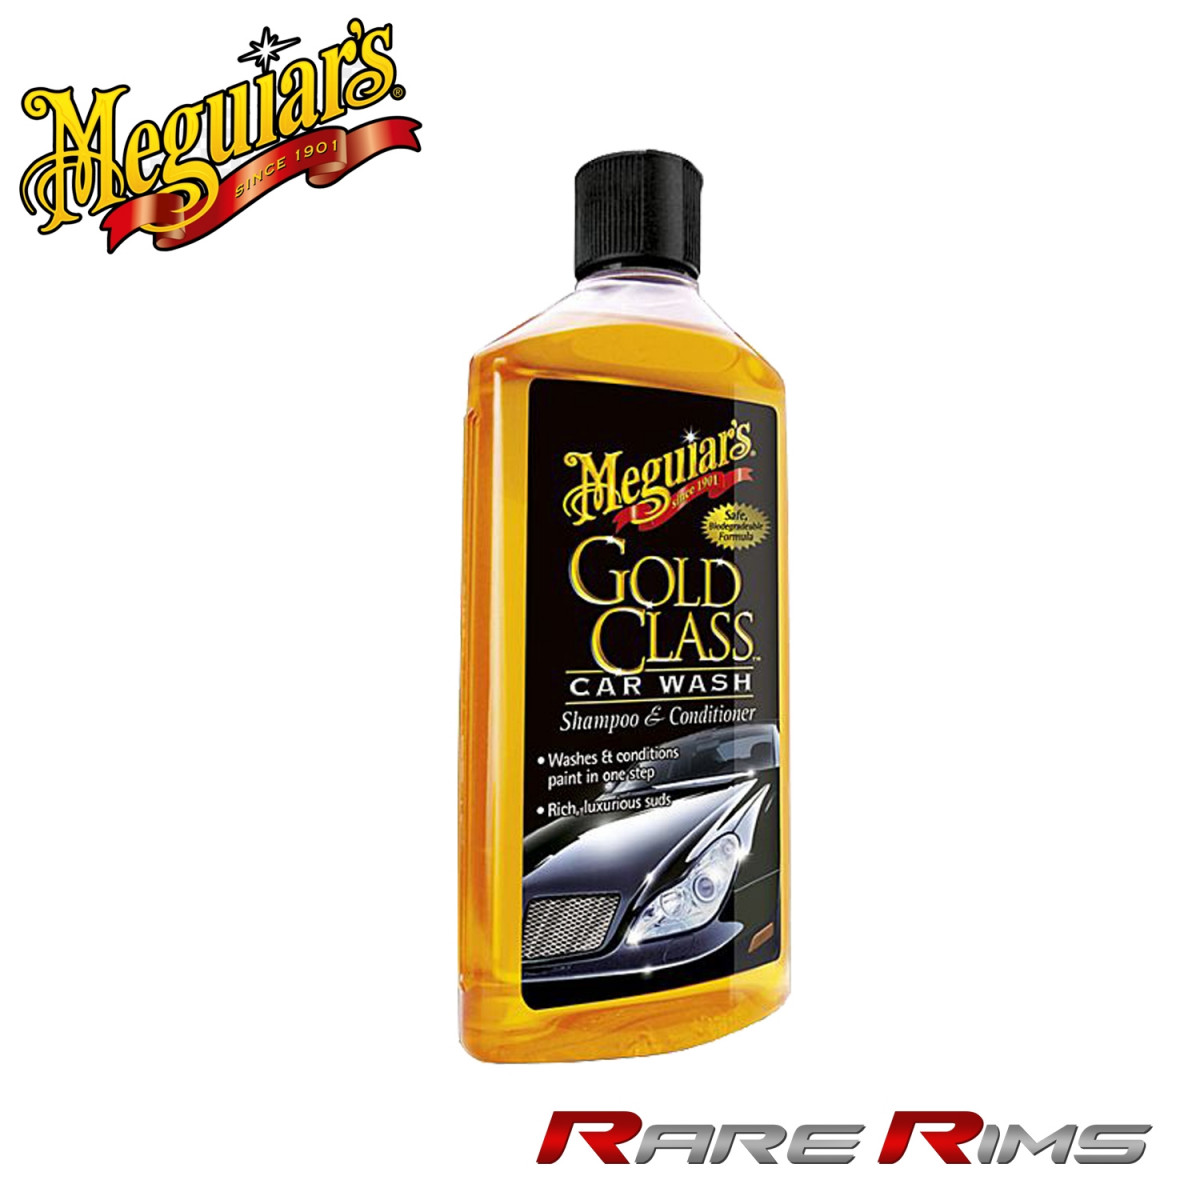 Meguiar's® Gold Class Car Wash Shampoo & Conditioner